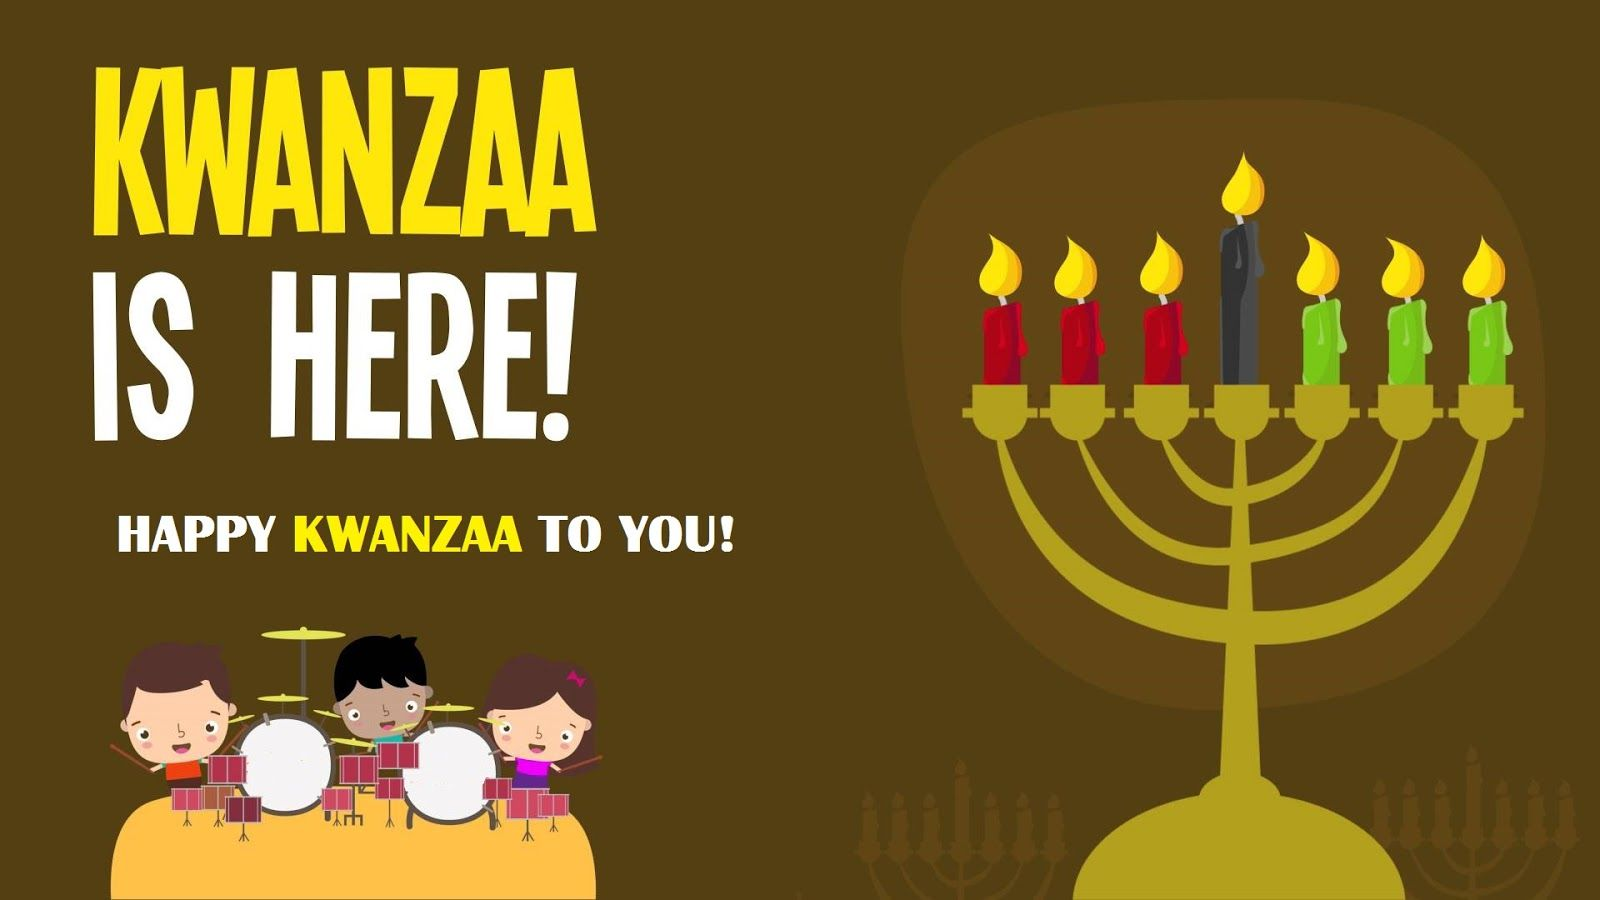 Happy kwanzaa wishes and holiday greeting cards badhaai feed happy kwanzaa wishes and holiday greeting cards m4hsunfo